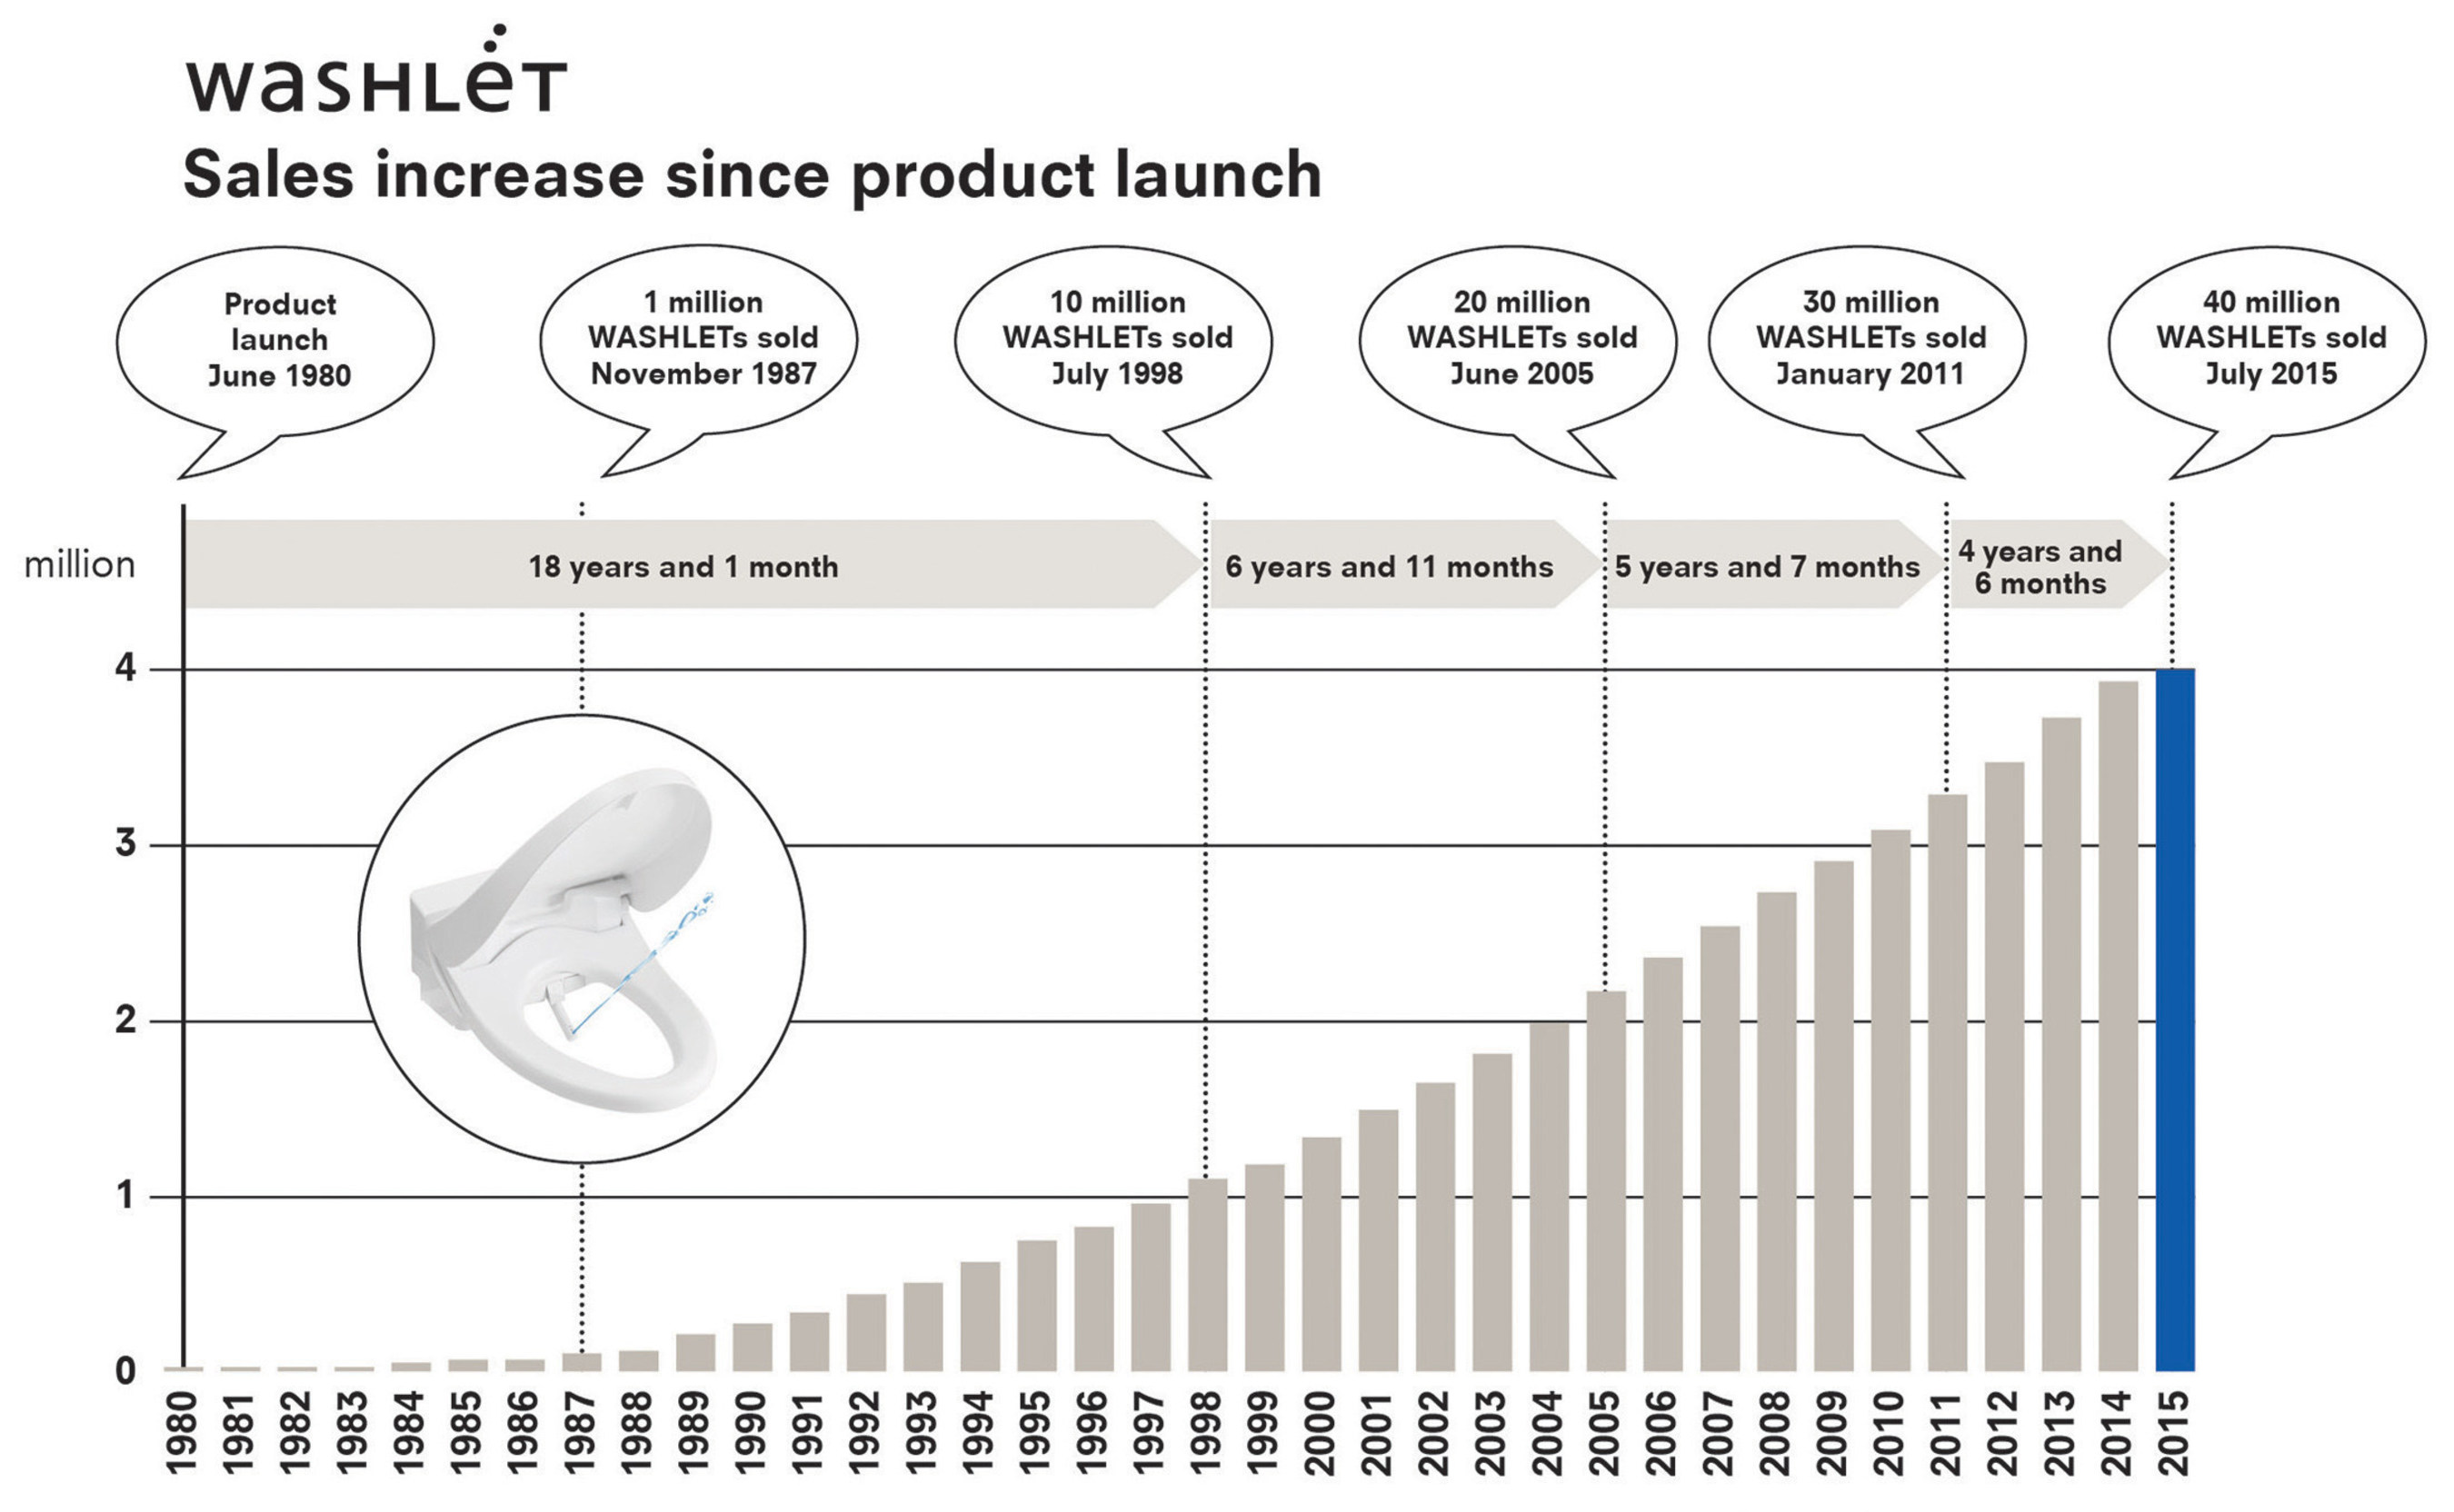 TOTO Washlet Sales Top 40 Million Units Globally